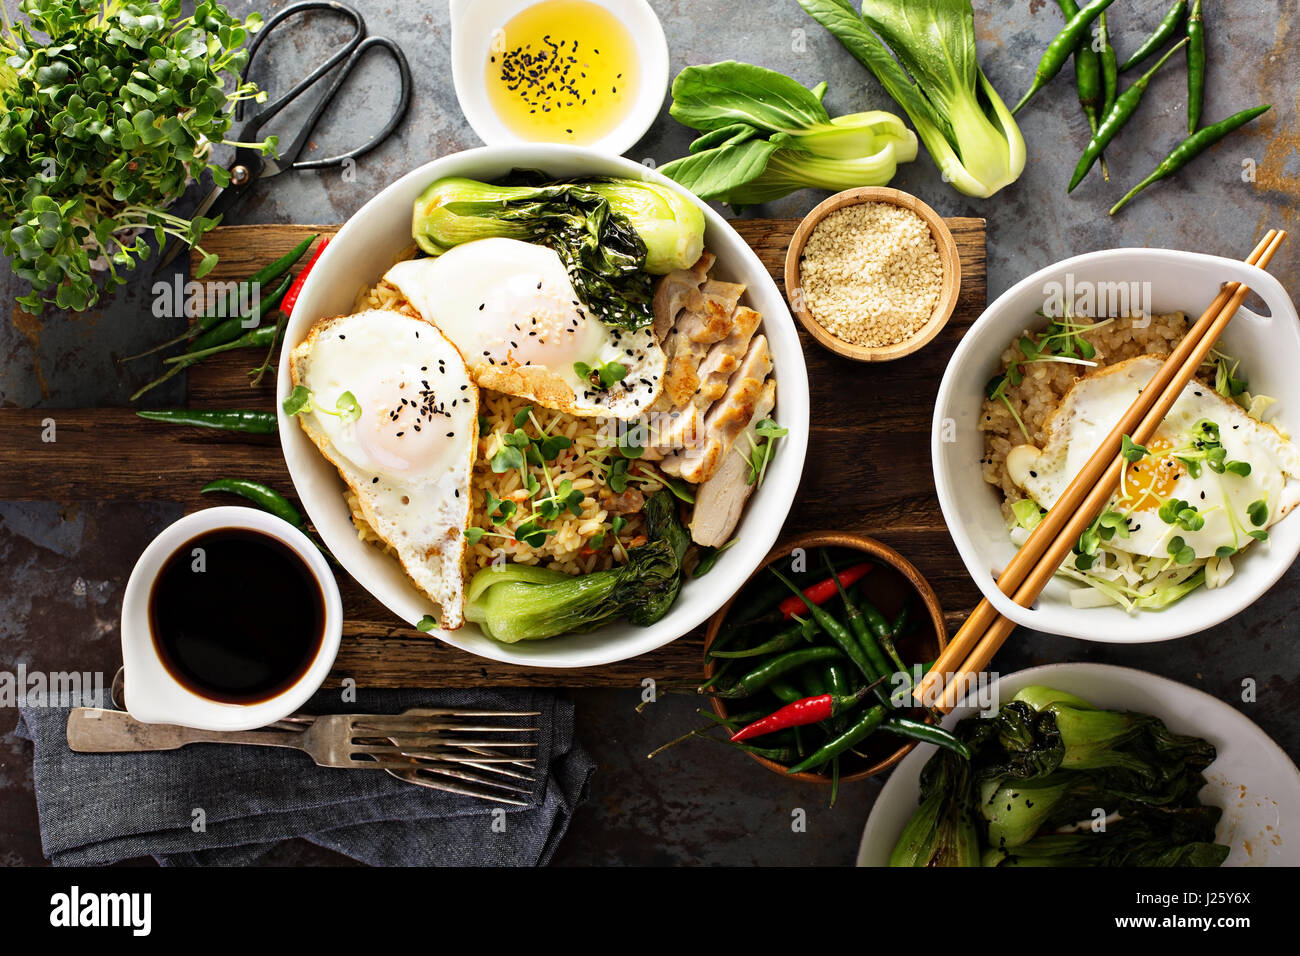 Asian food concept with fried rice, baby bok choy, eggs and soy sauce Stock Photo